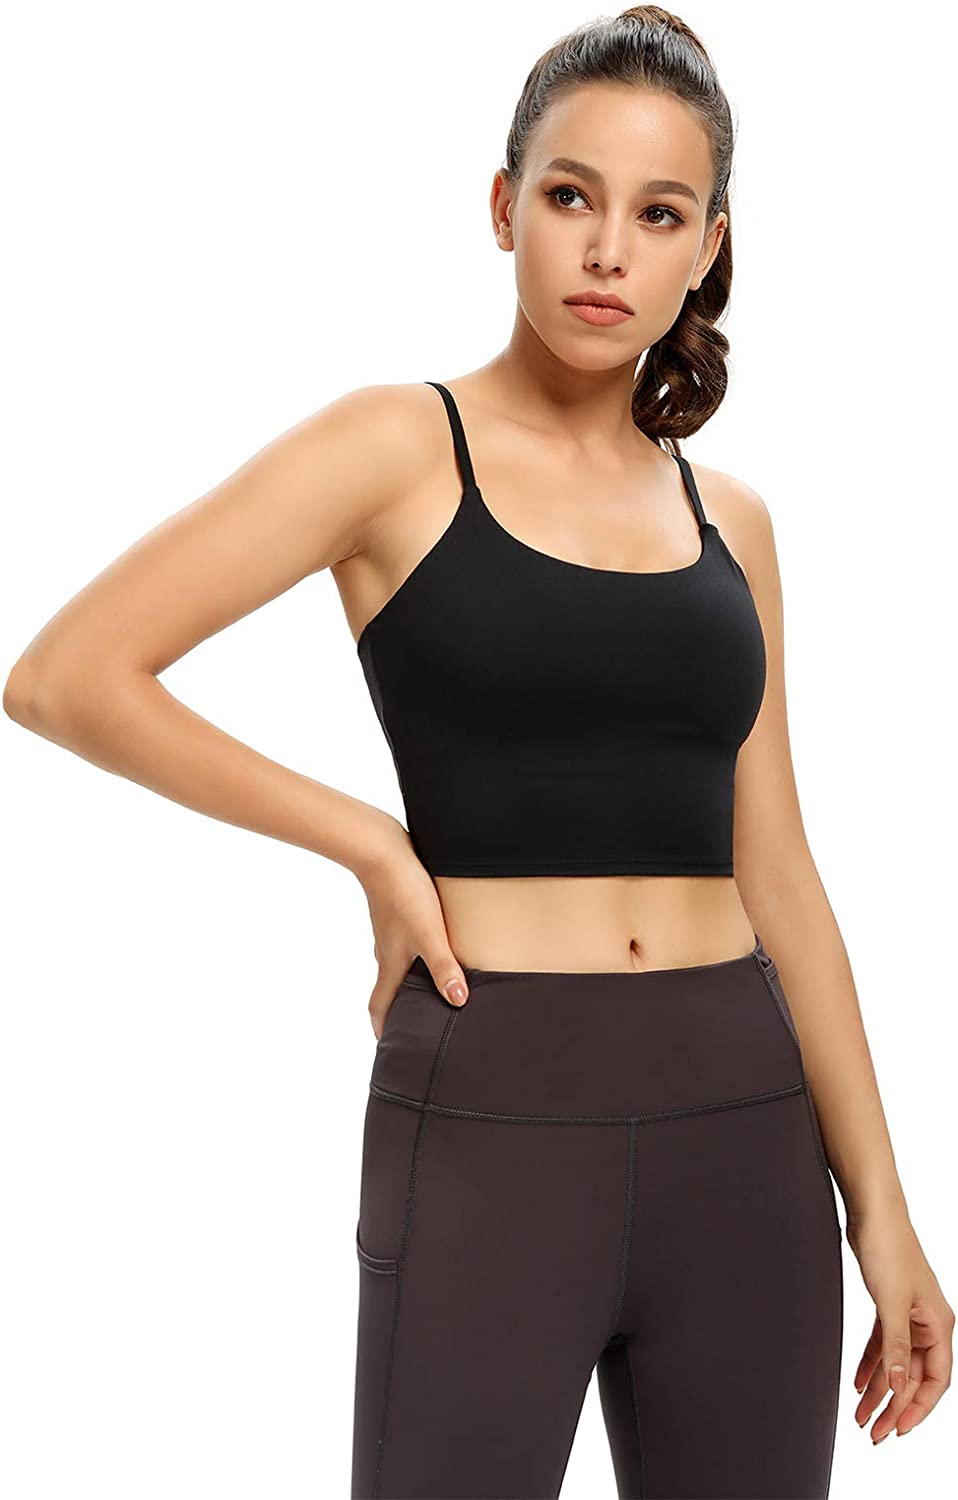 Crop Sport Bra for Women Yoga Running Workout Tank Top with Built in Bra Longline Removable Padded Bra